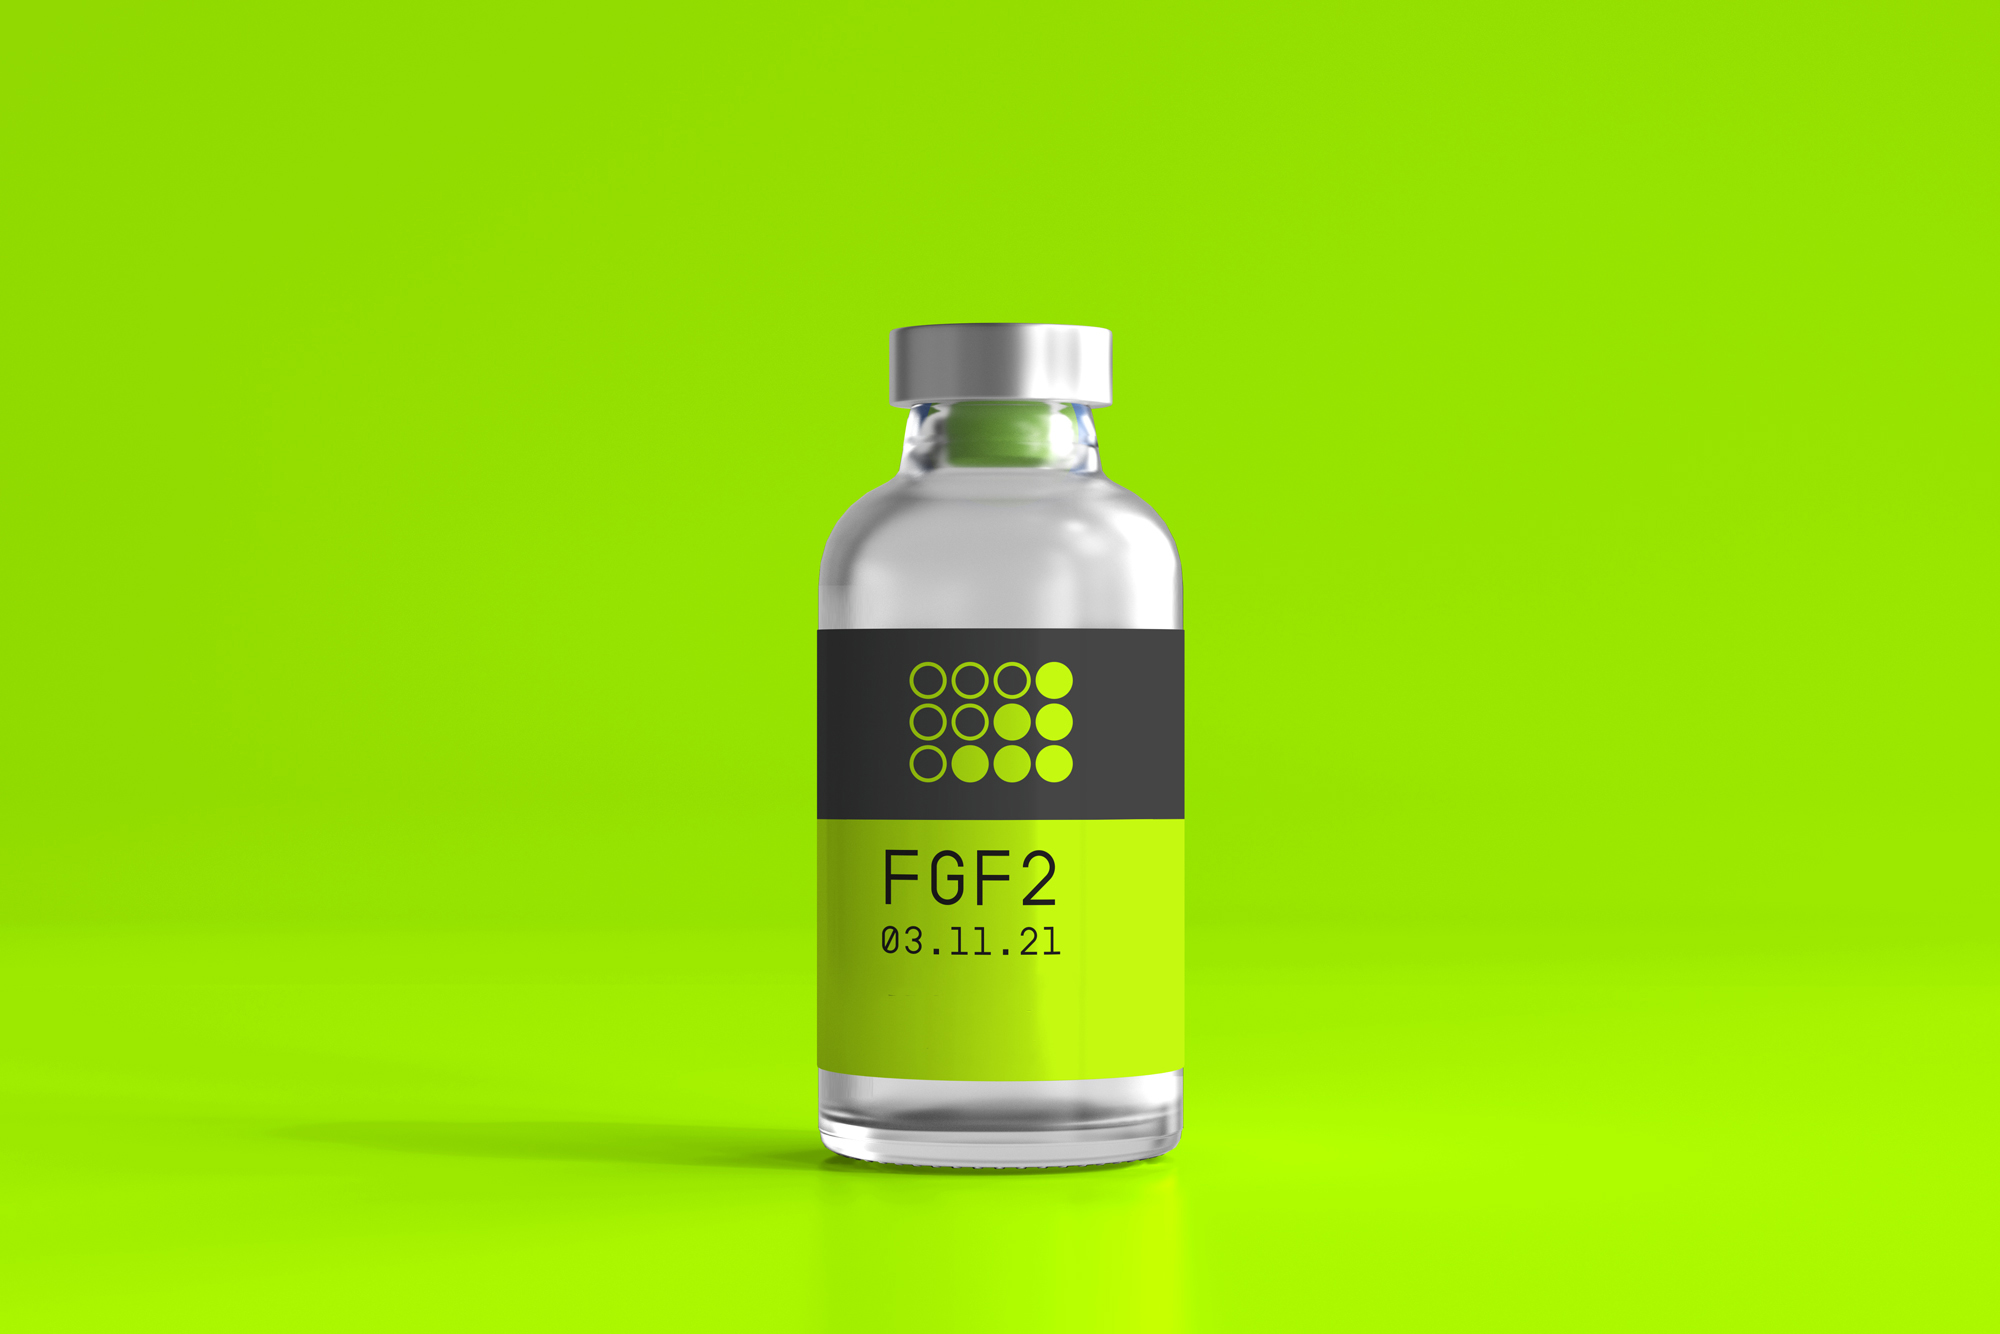 Future Fields Recombinant Bovine FGF2 (> 95 % purity) produced with the EntoEngine™ platform. Fulfills the needs of FGF2 requirements in cell culture across a variety of land-dwelling and aquatic species. Future Fields products are currently available for Research Use Only.